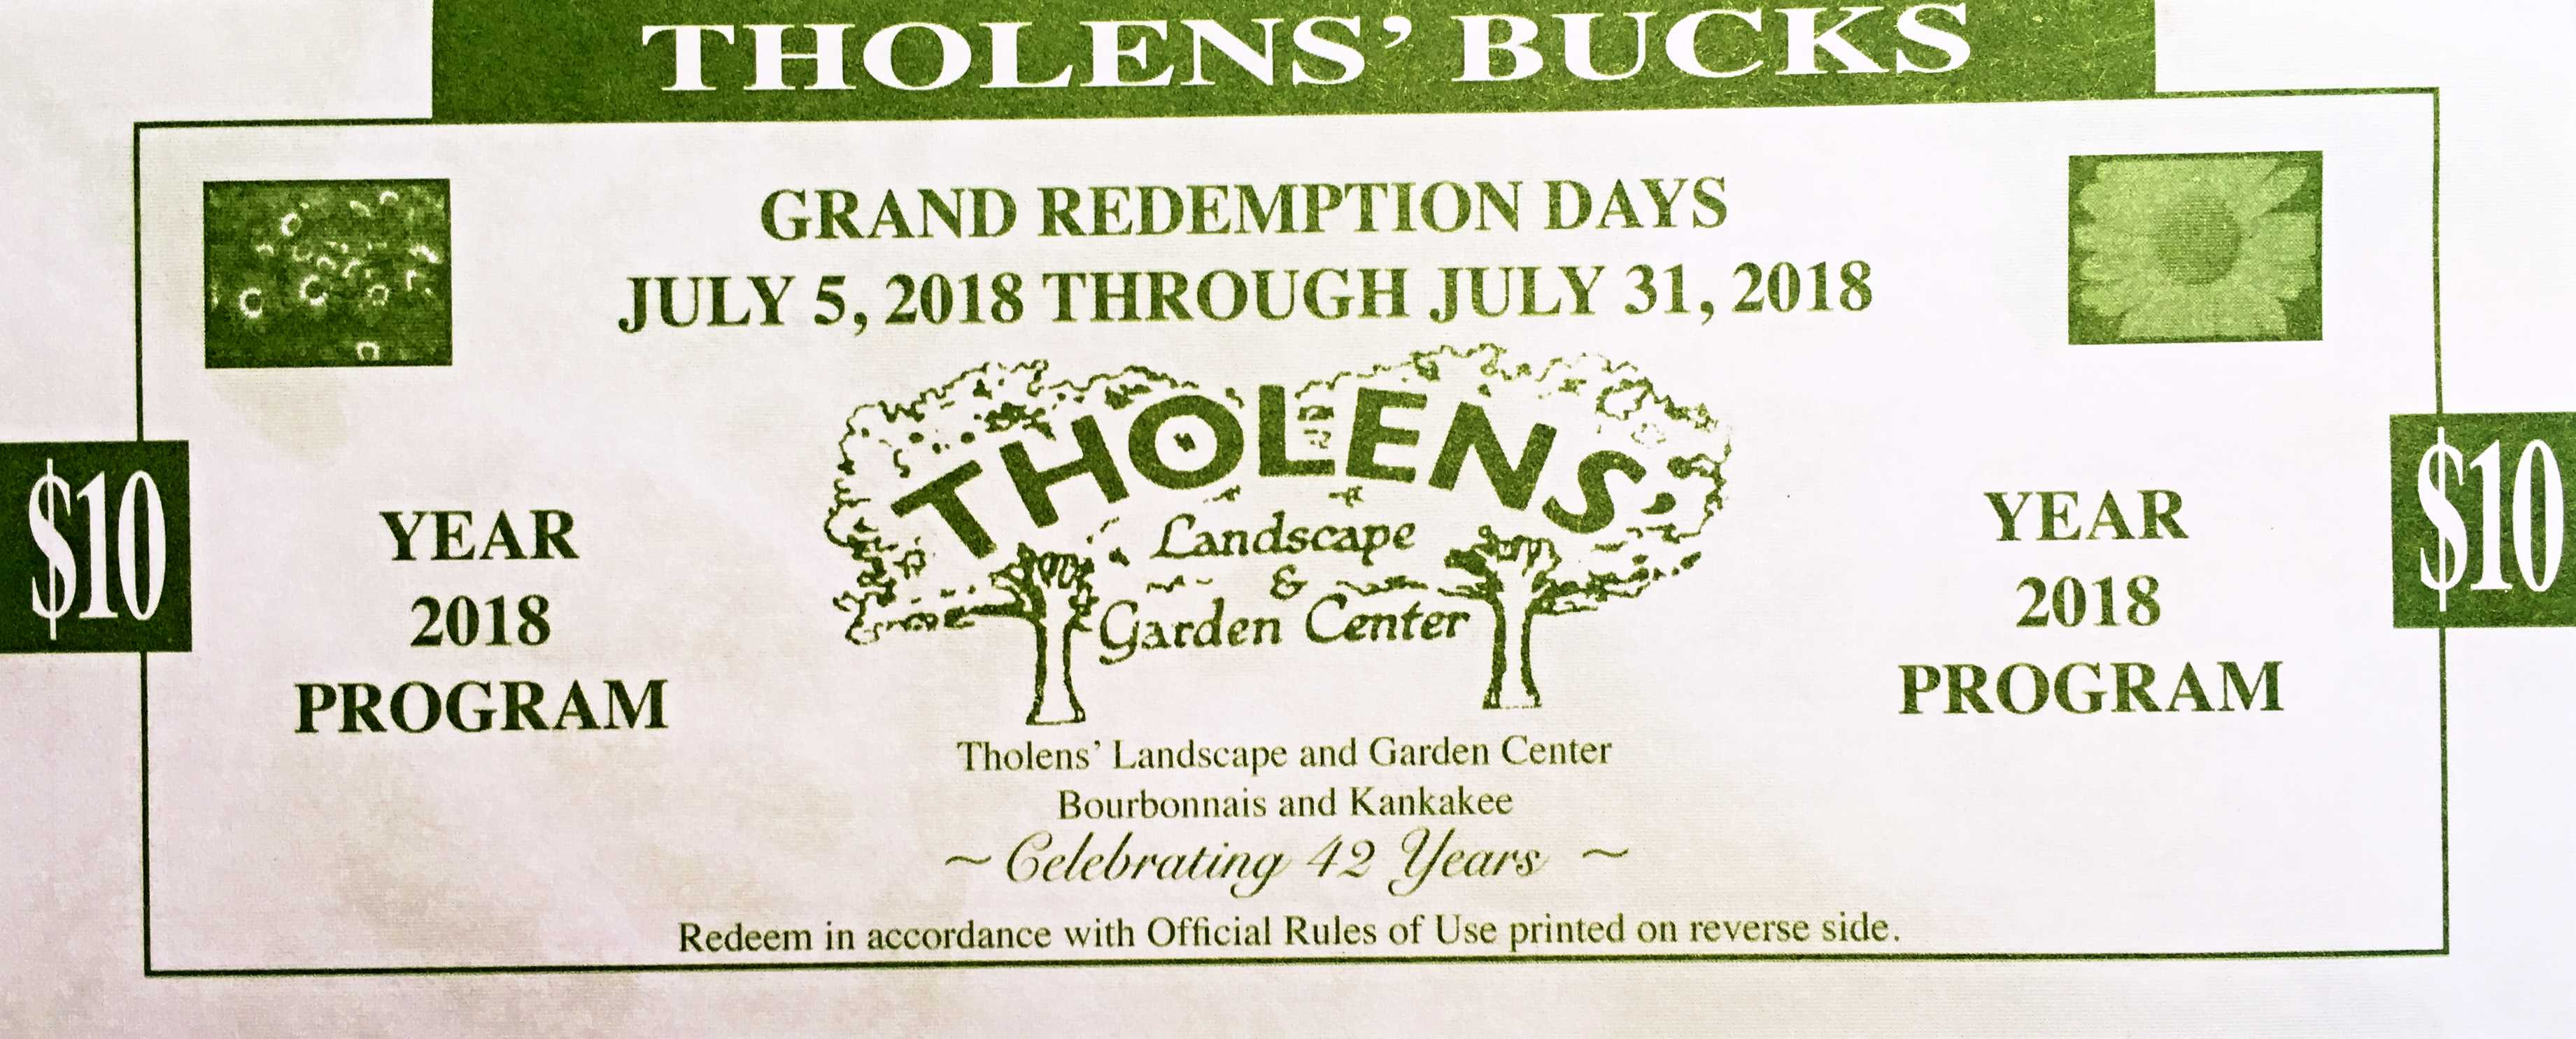 Superieur Tholensu0027 Bucks Grand Redeption Days Ends Tomorrow, July 31st! Hurry In To  Take Advantage Of Up To 50% Off Your Purchase!*